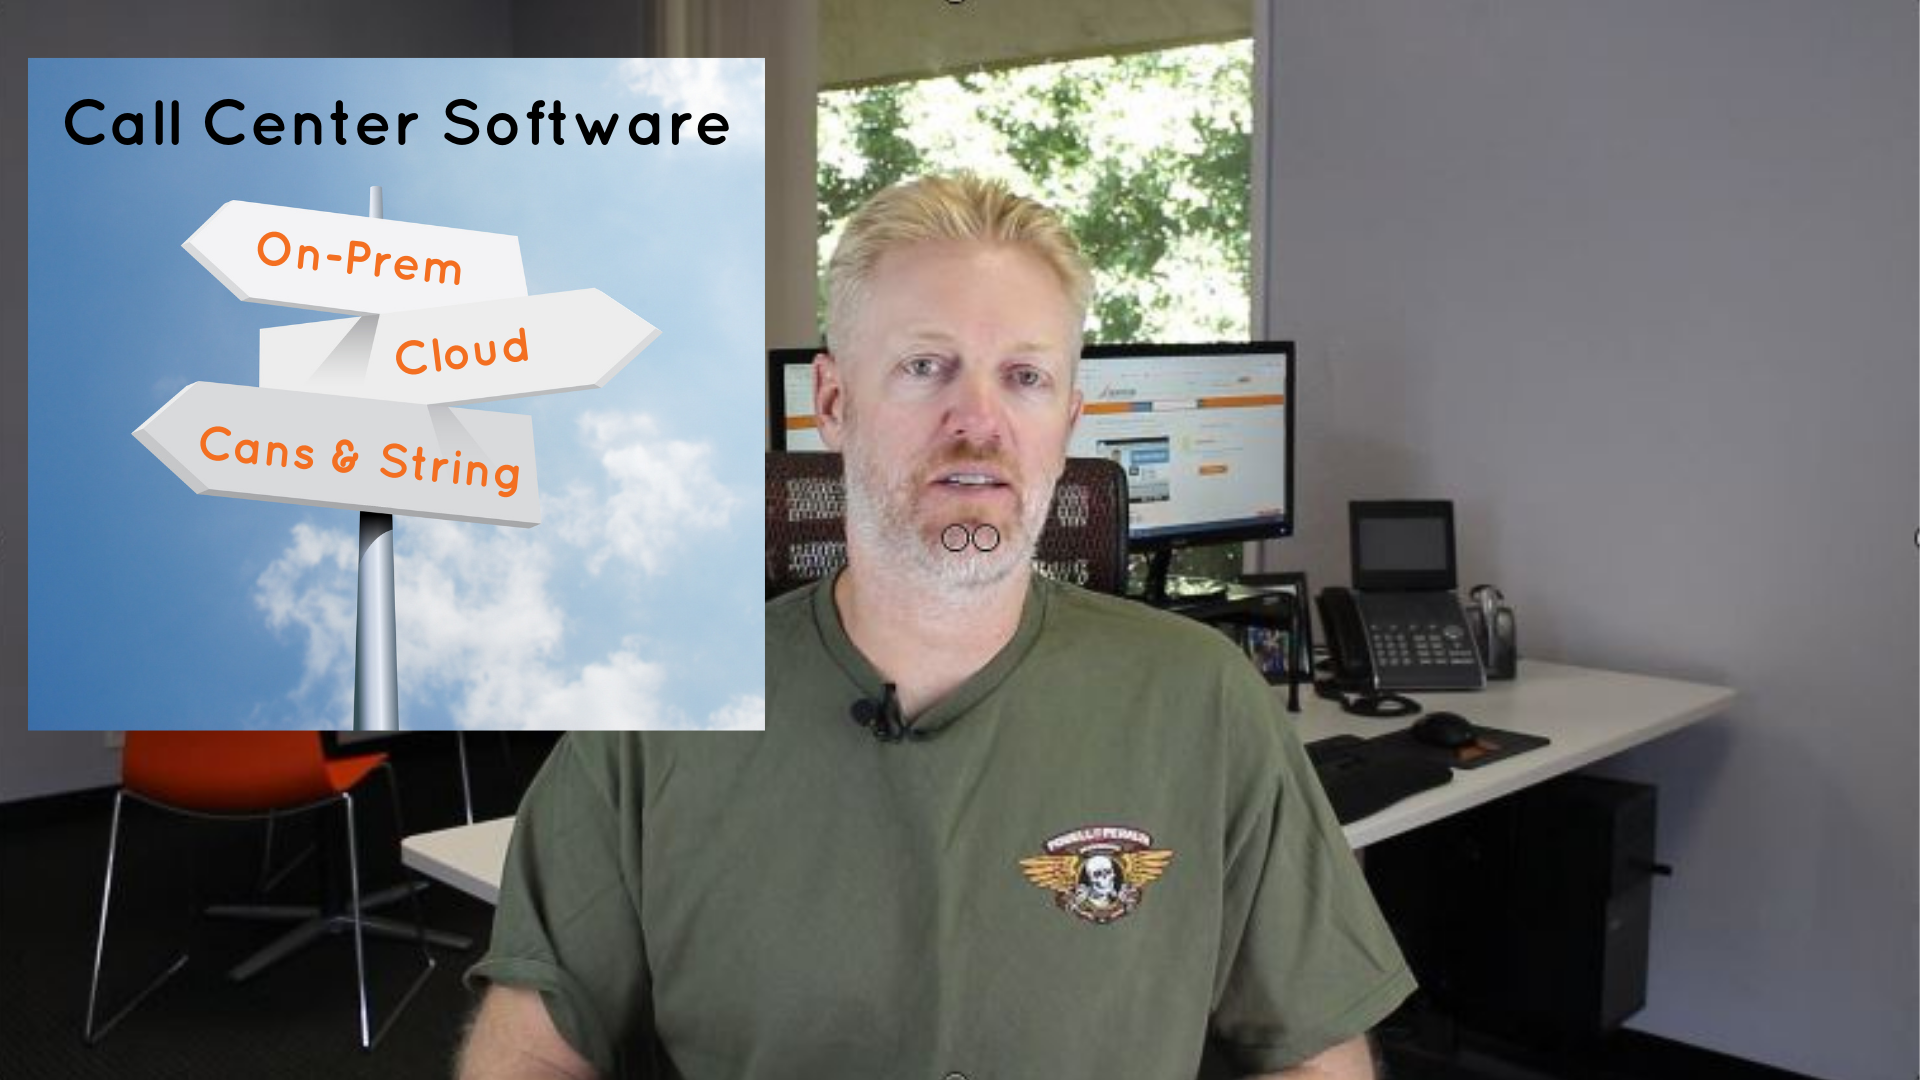 Is Cloud Call Center Software better than on-premises